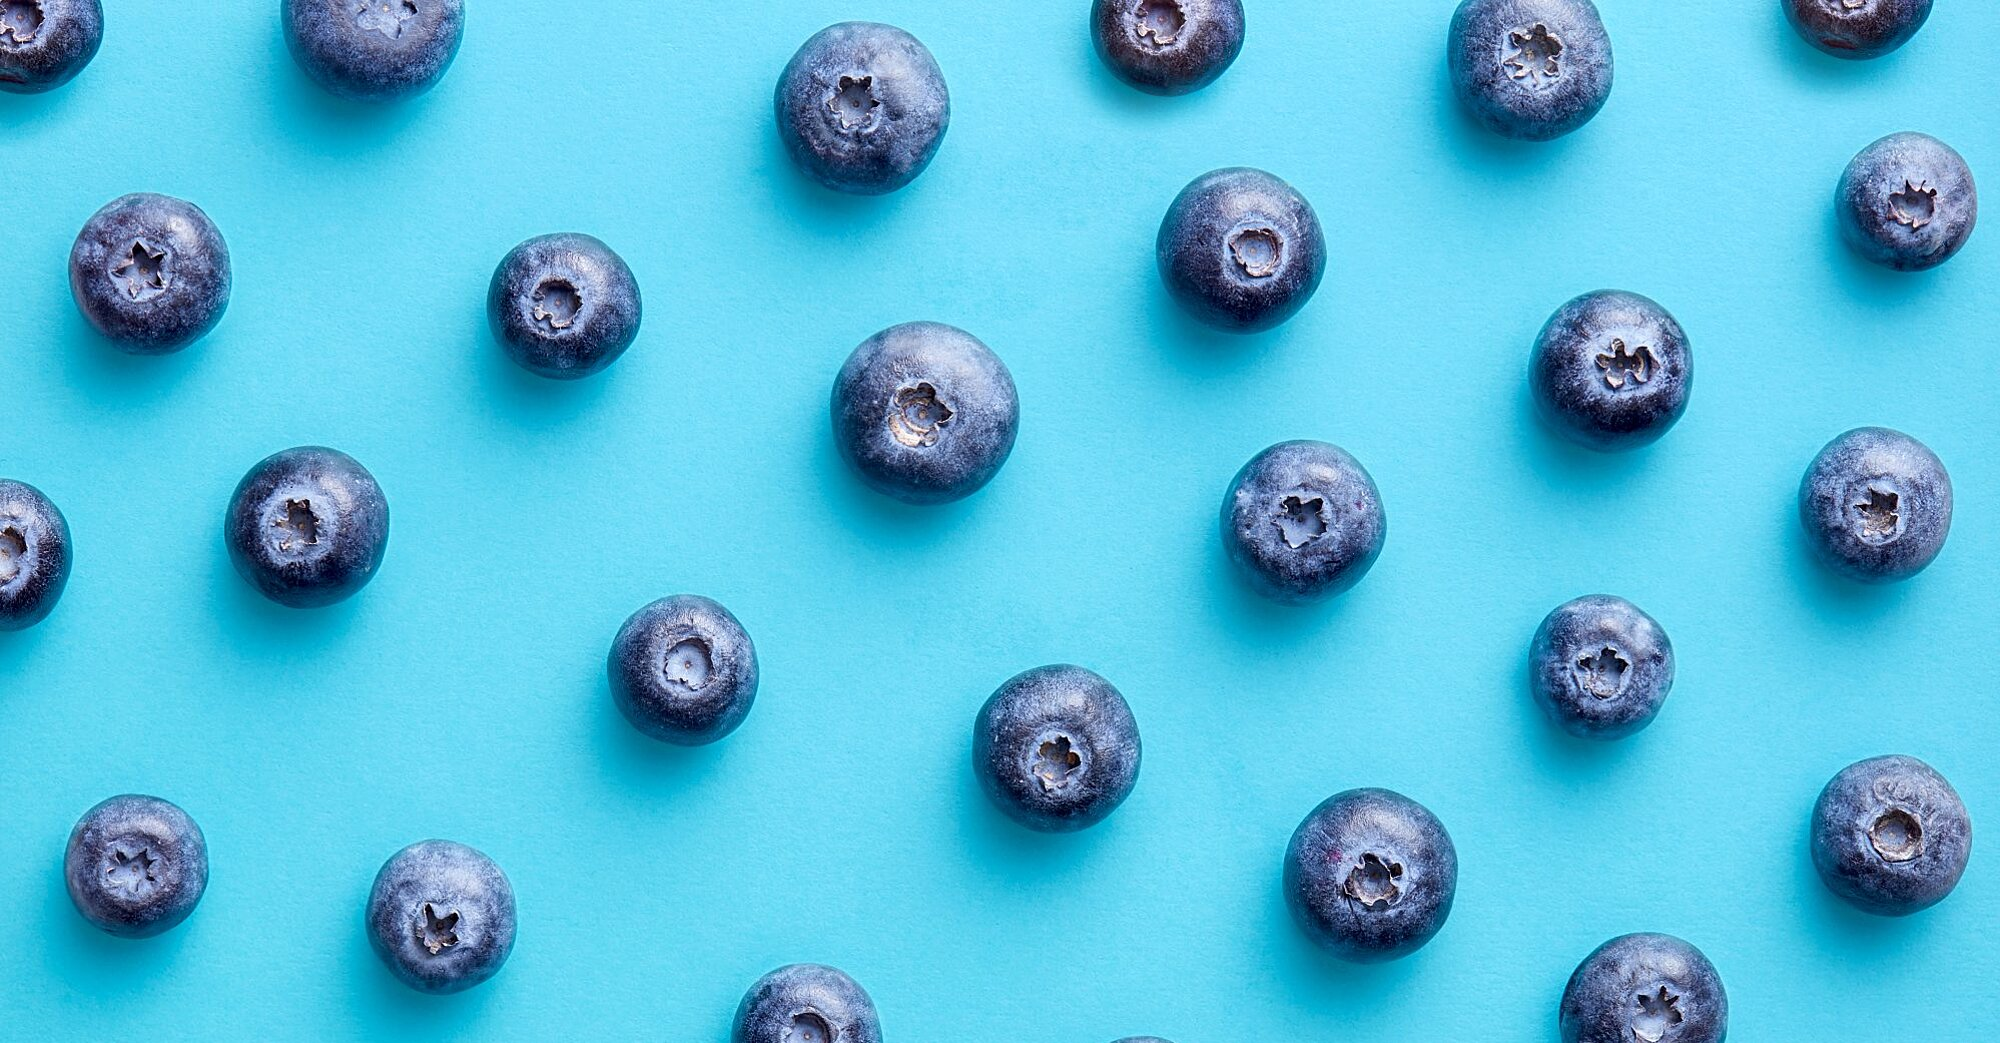 The Top 5 Ways Blueberries Improve Your Health, According to an RD